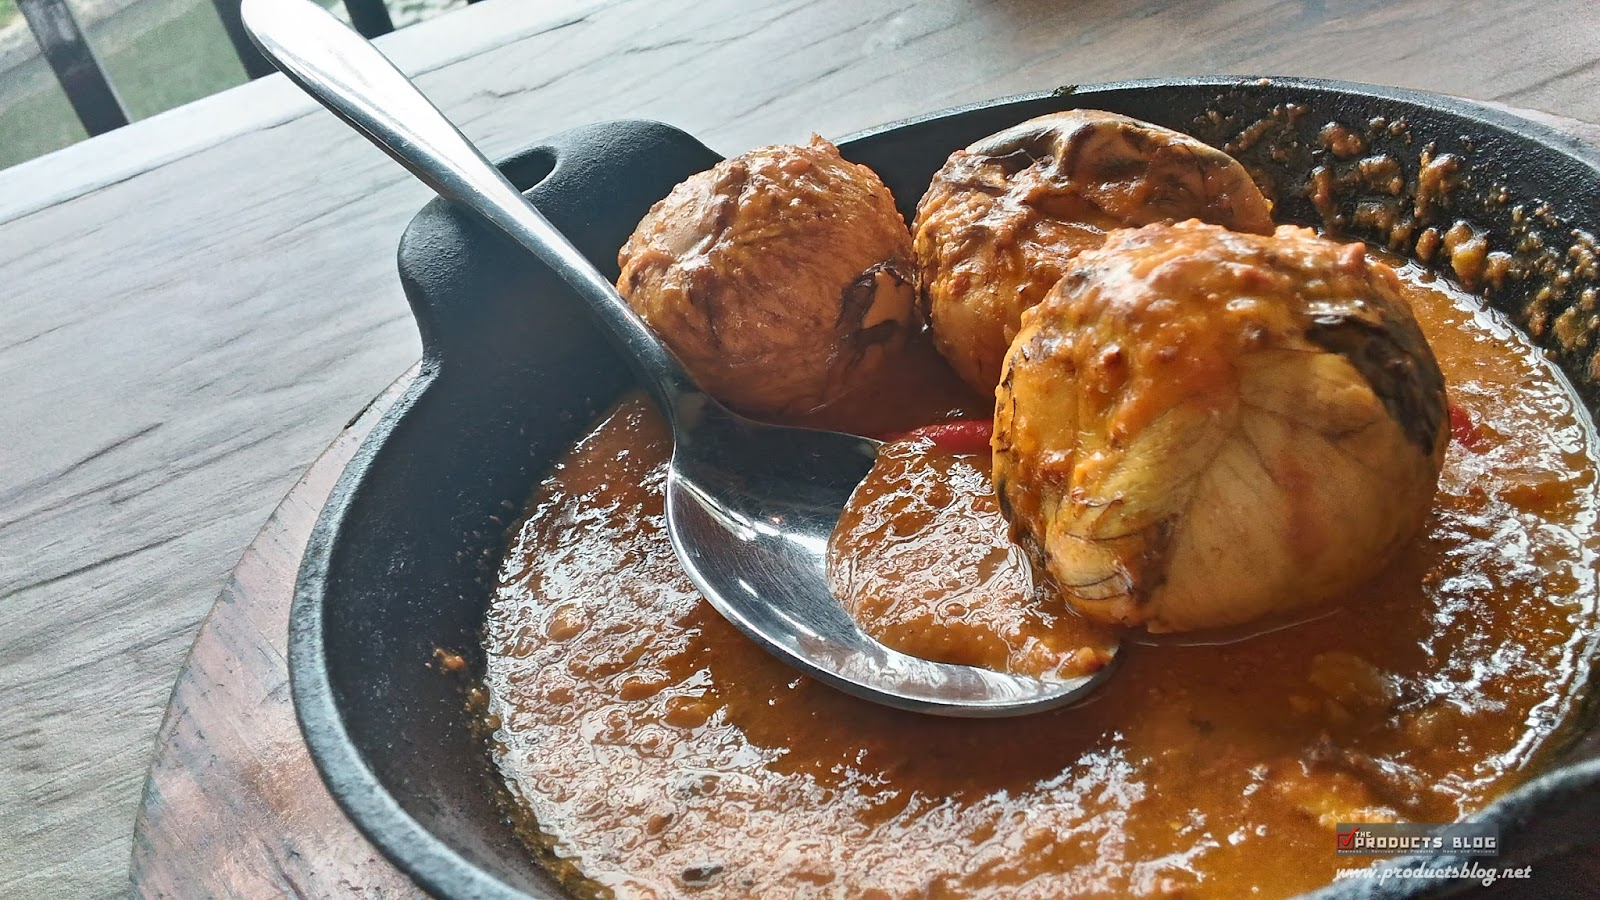 Matis meat and bread the home of epic balut recipe the products well it is in short crab fat which is a very delicious food but is high in cholesterol it is the orange red material found inside crabs shell forumfinder Gallery